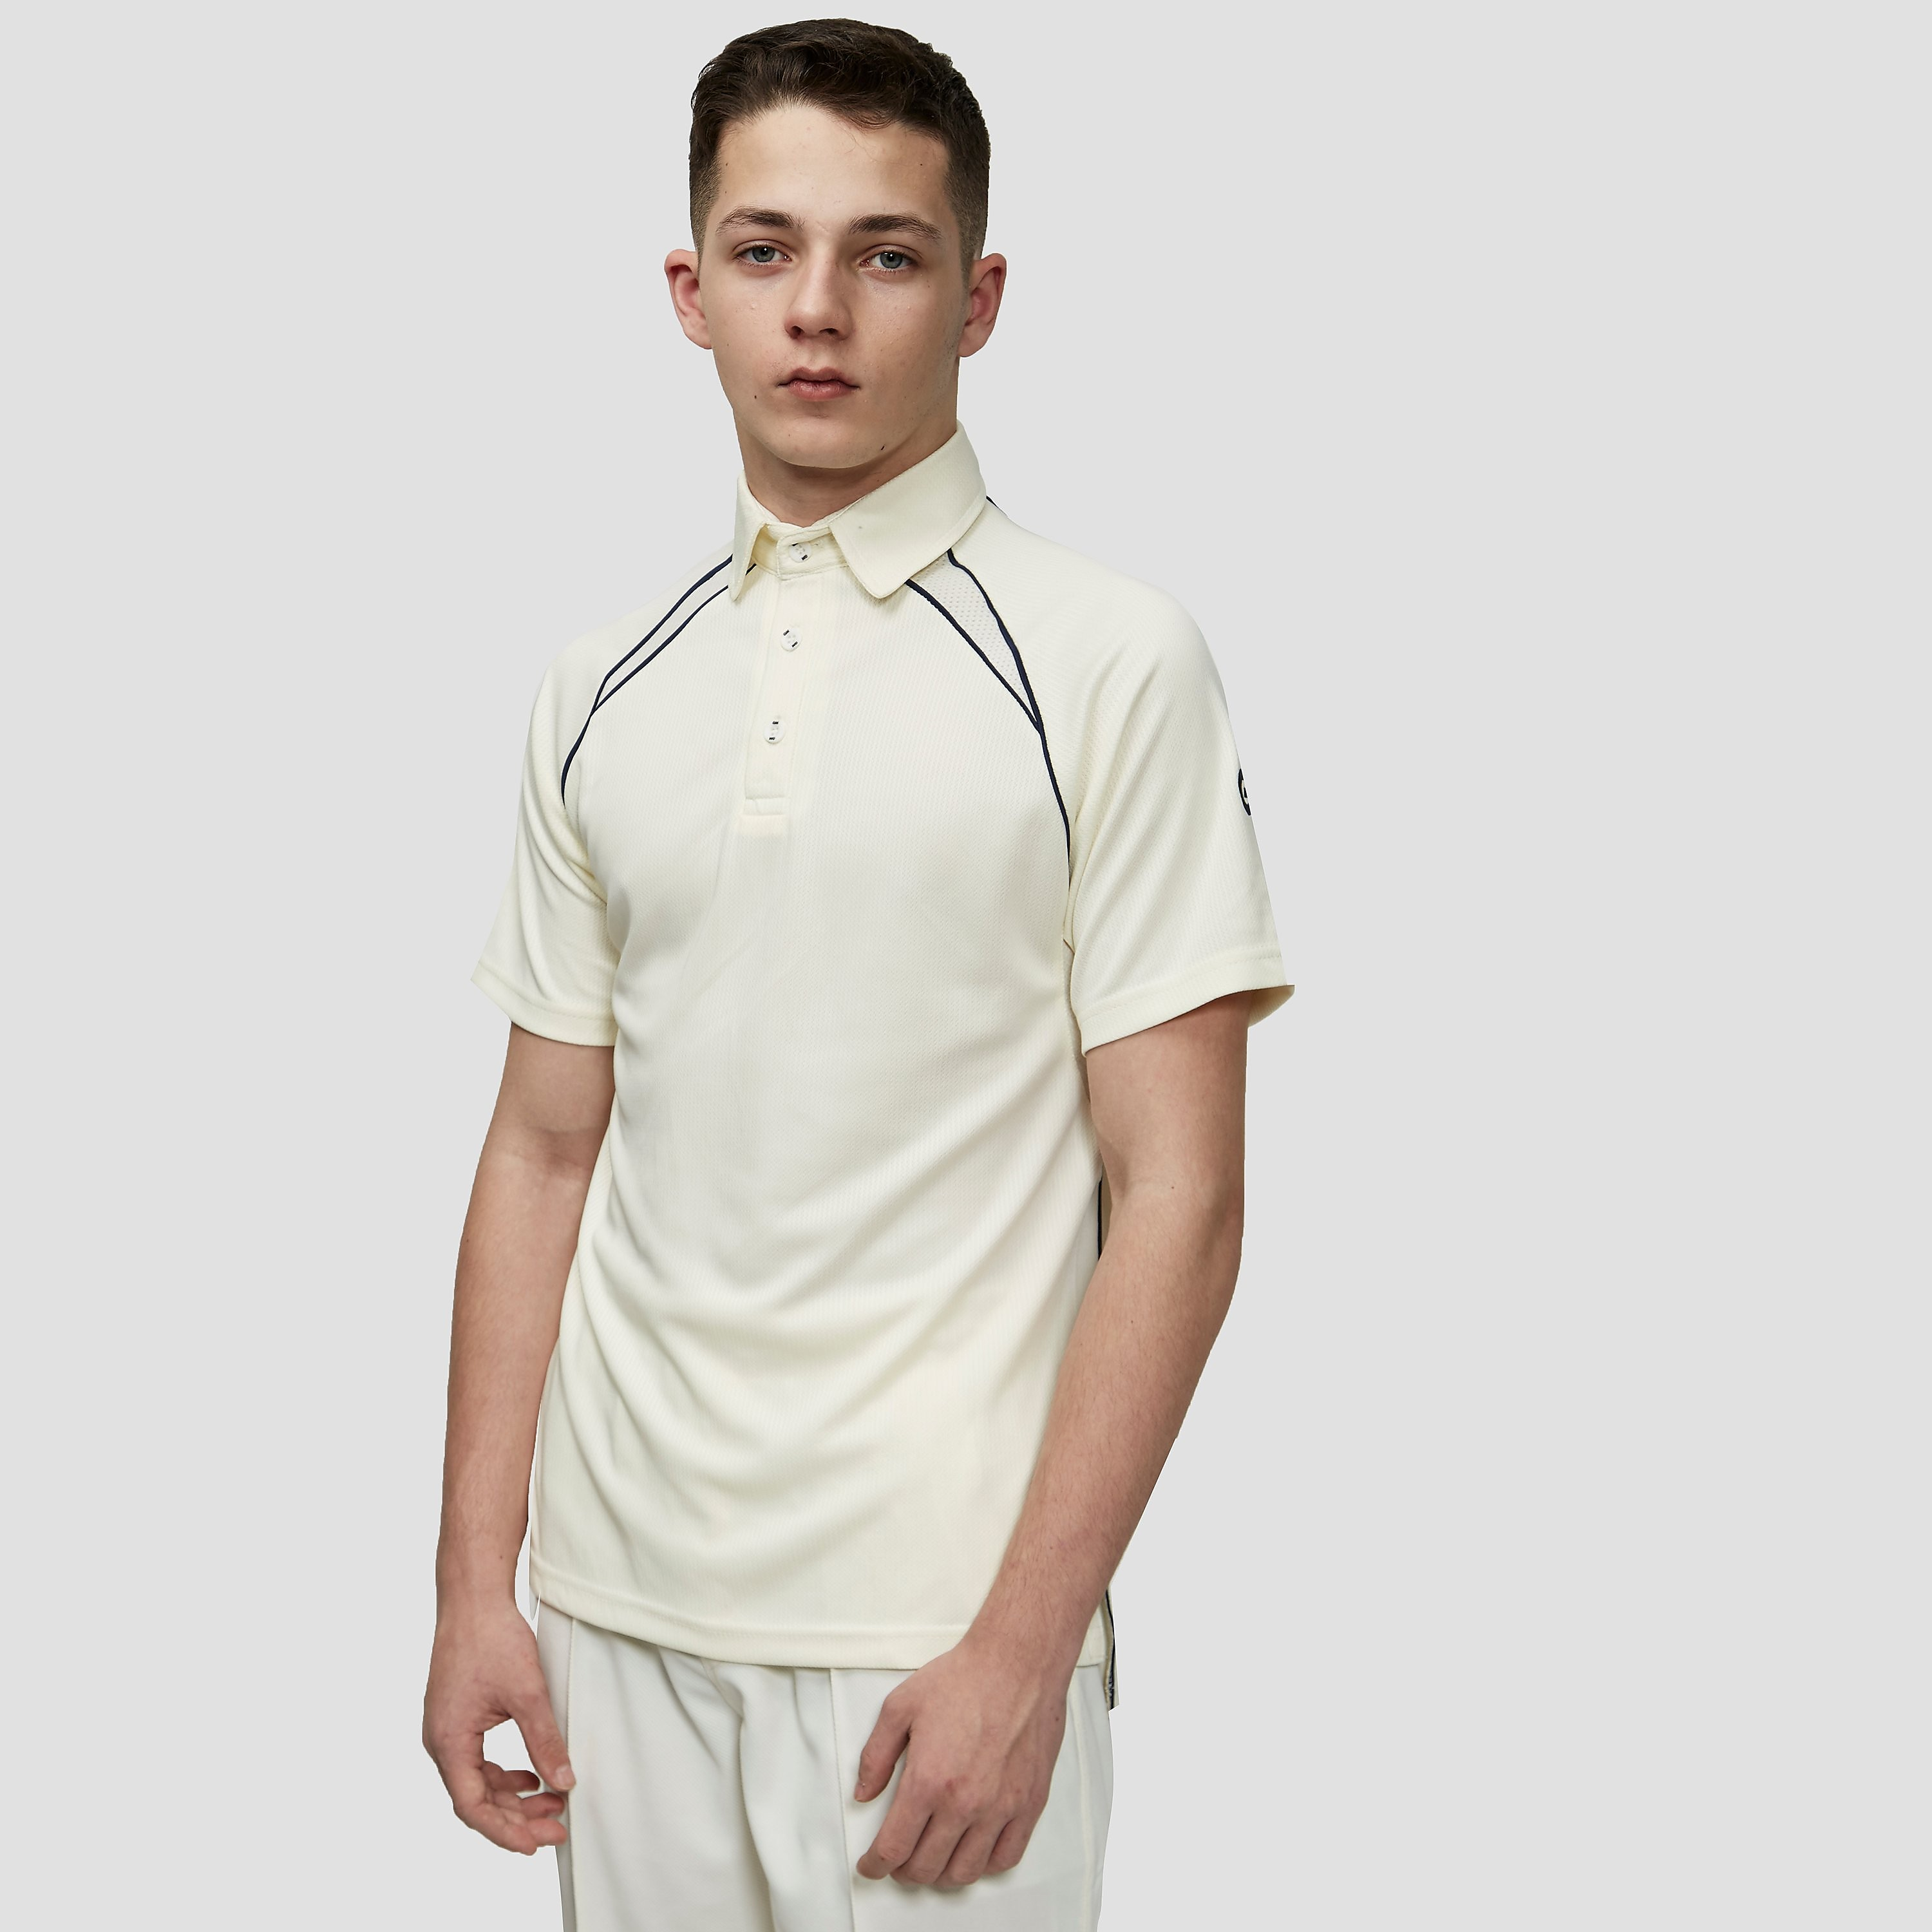 Gunn & Moore Teknik Junior Short Sleeve Cricket Shirt